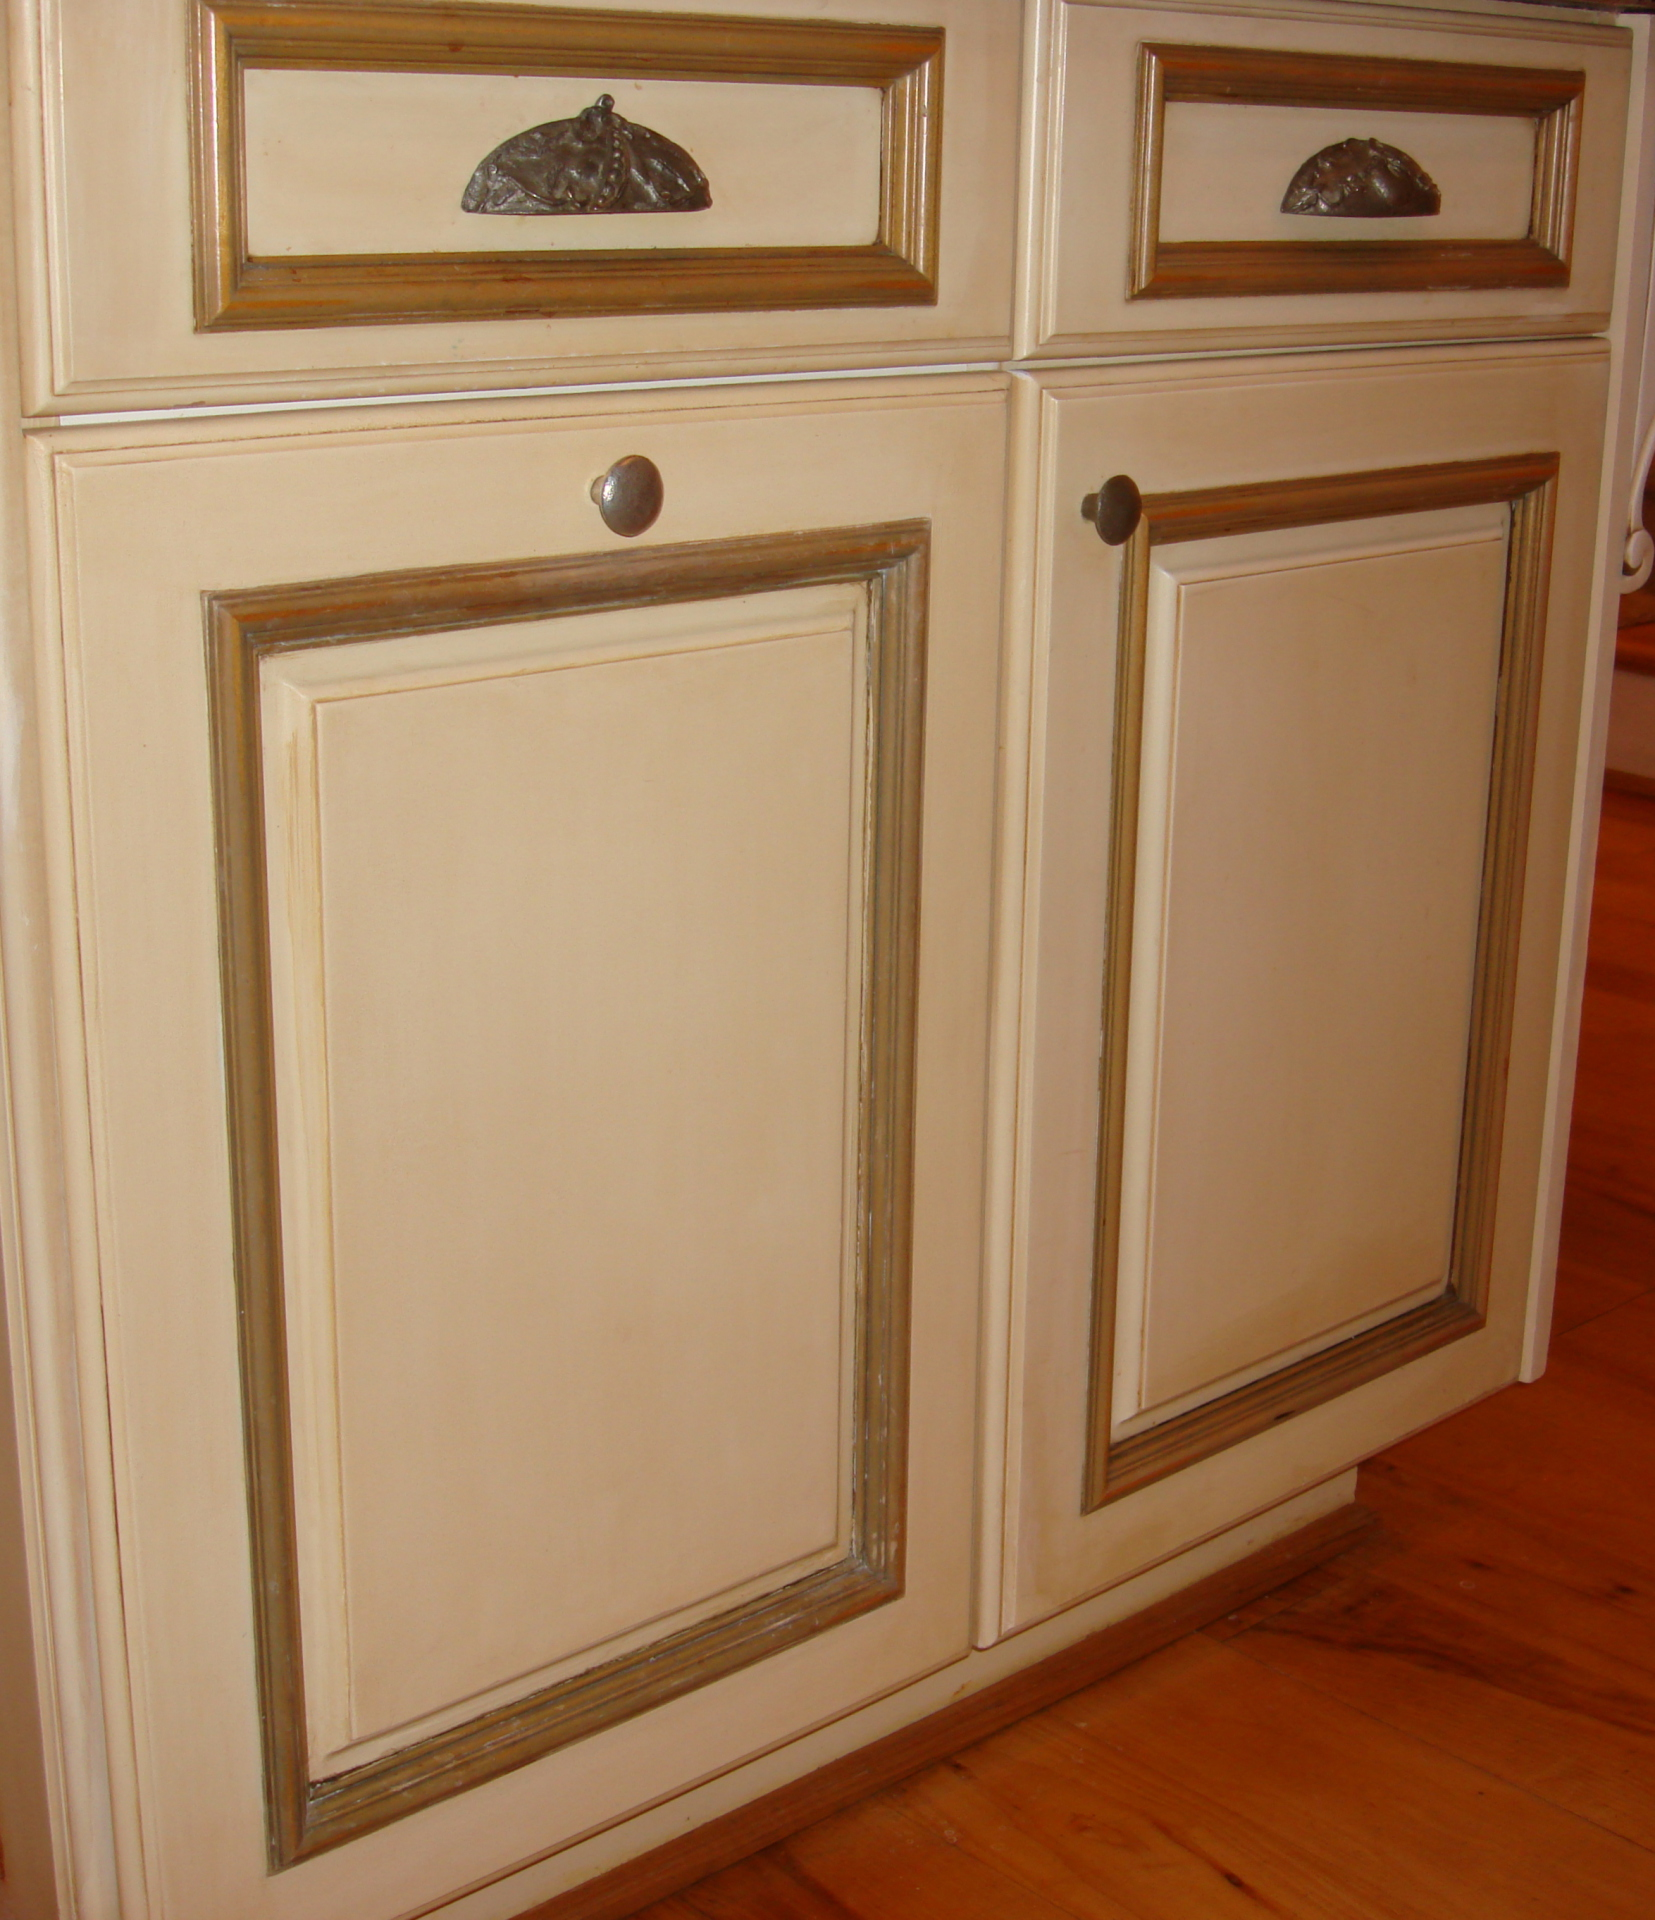 trash door repainted to match existing cabinets glazed gold accents raleigh nc